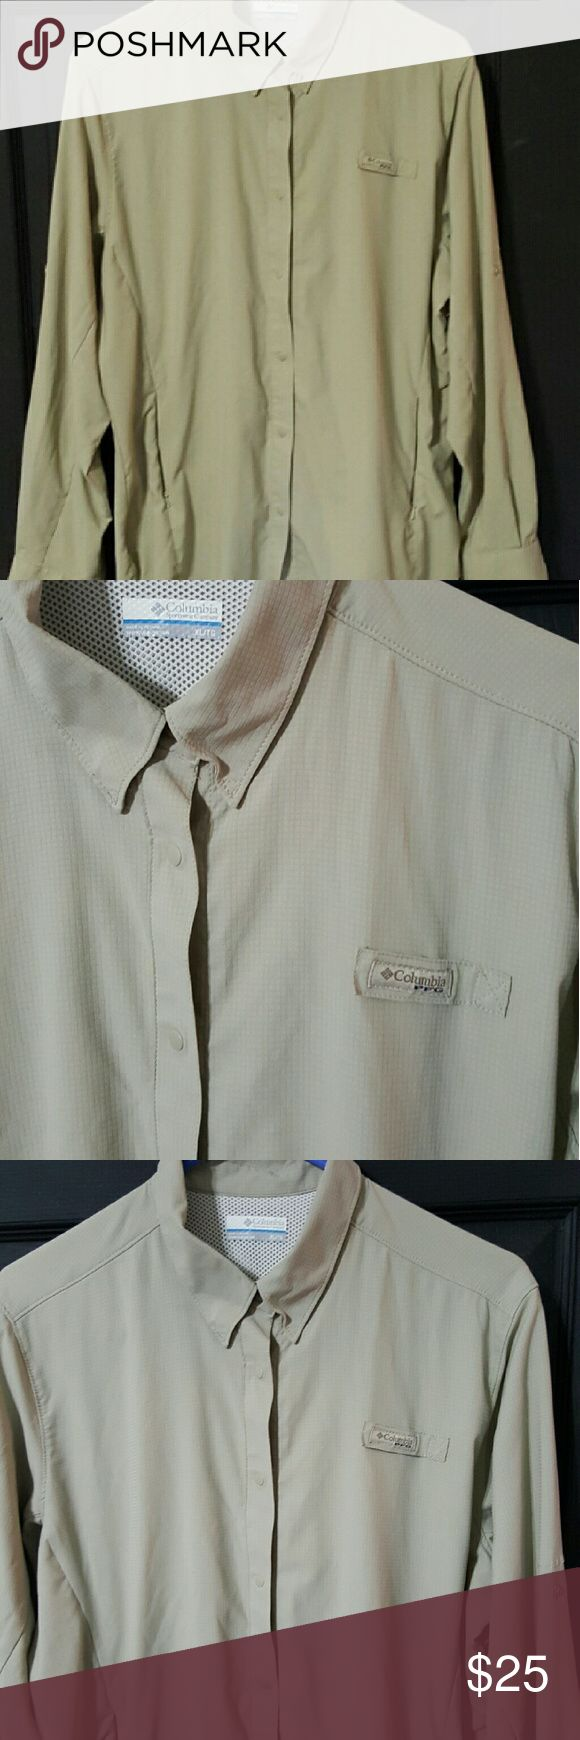 *LIKE NEW* Columbia  PFG Shirt Womens Sz XL *LIKE NEW*  Columbia  PFG Shirt Womens Sz XL Columbia Tops Button Down Shirts